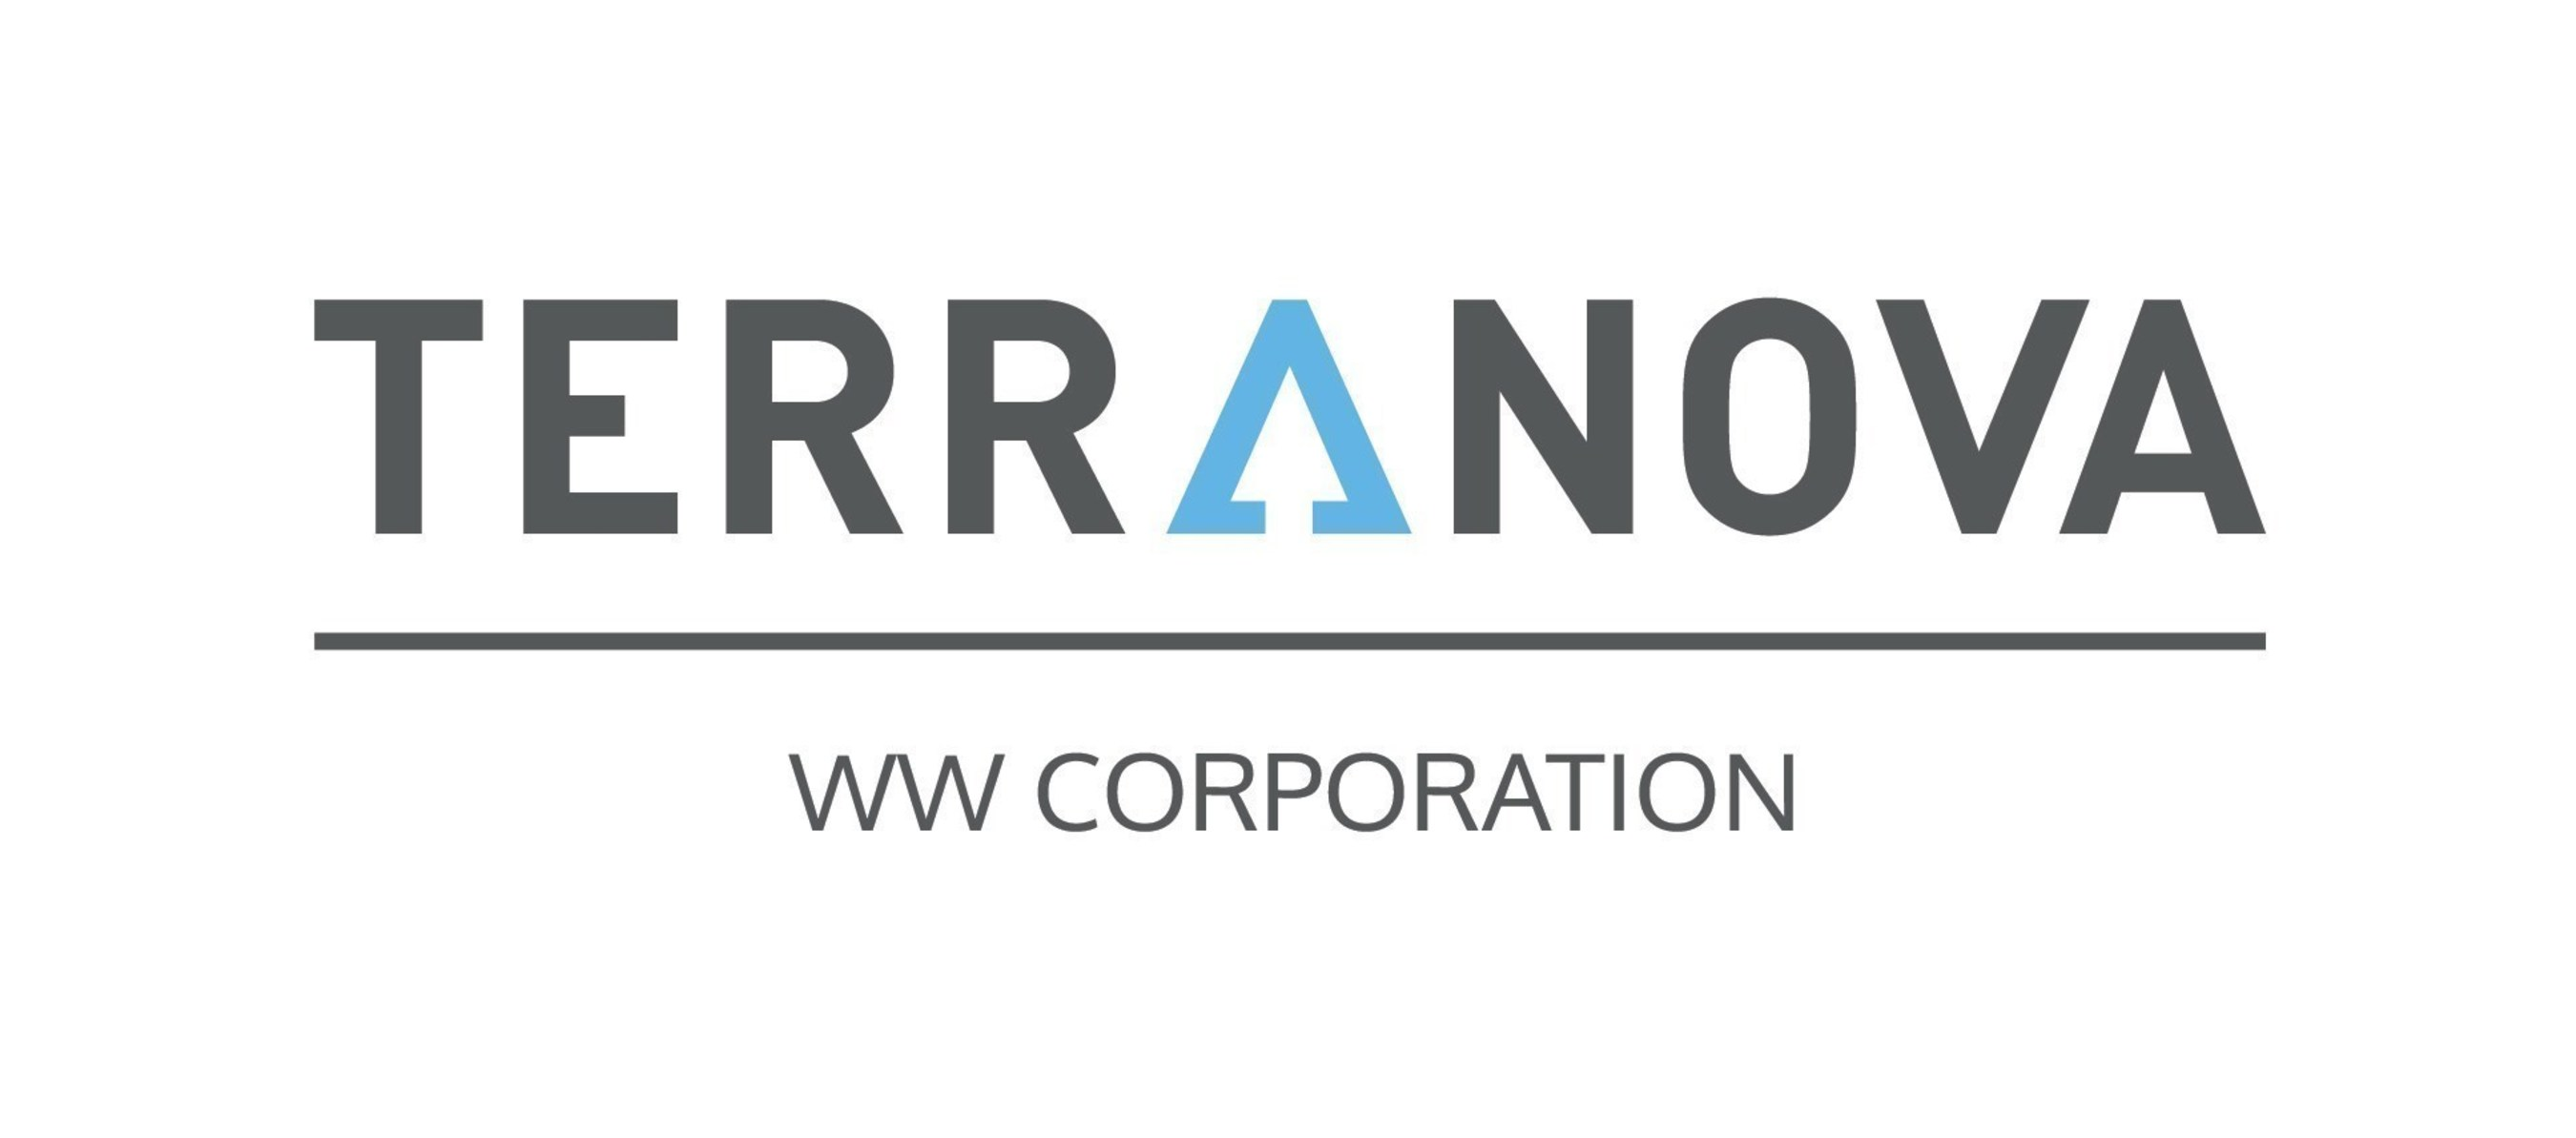 Terranova WW Corporation is once again recognized as a leader in Gartner's Magic Quadrant